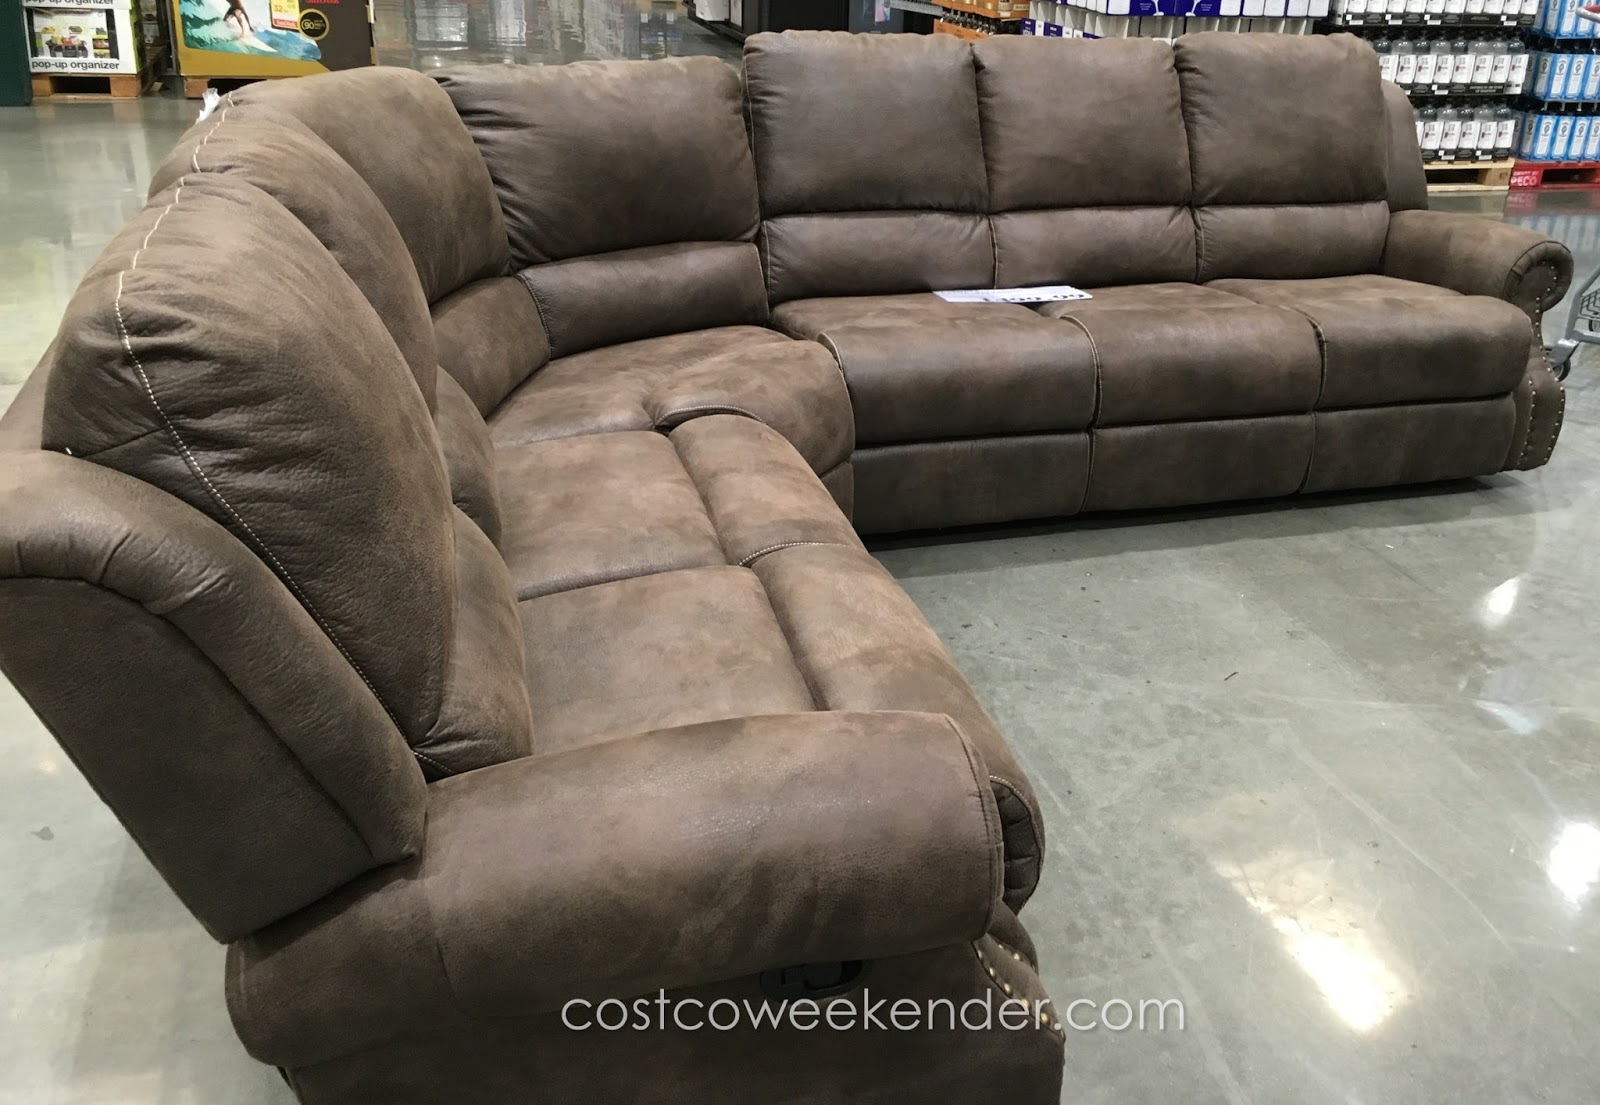 Lounge In Comfort With The Motion Sectional Three Recliners